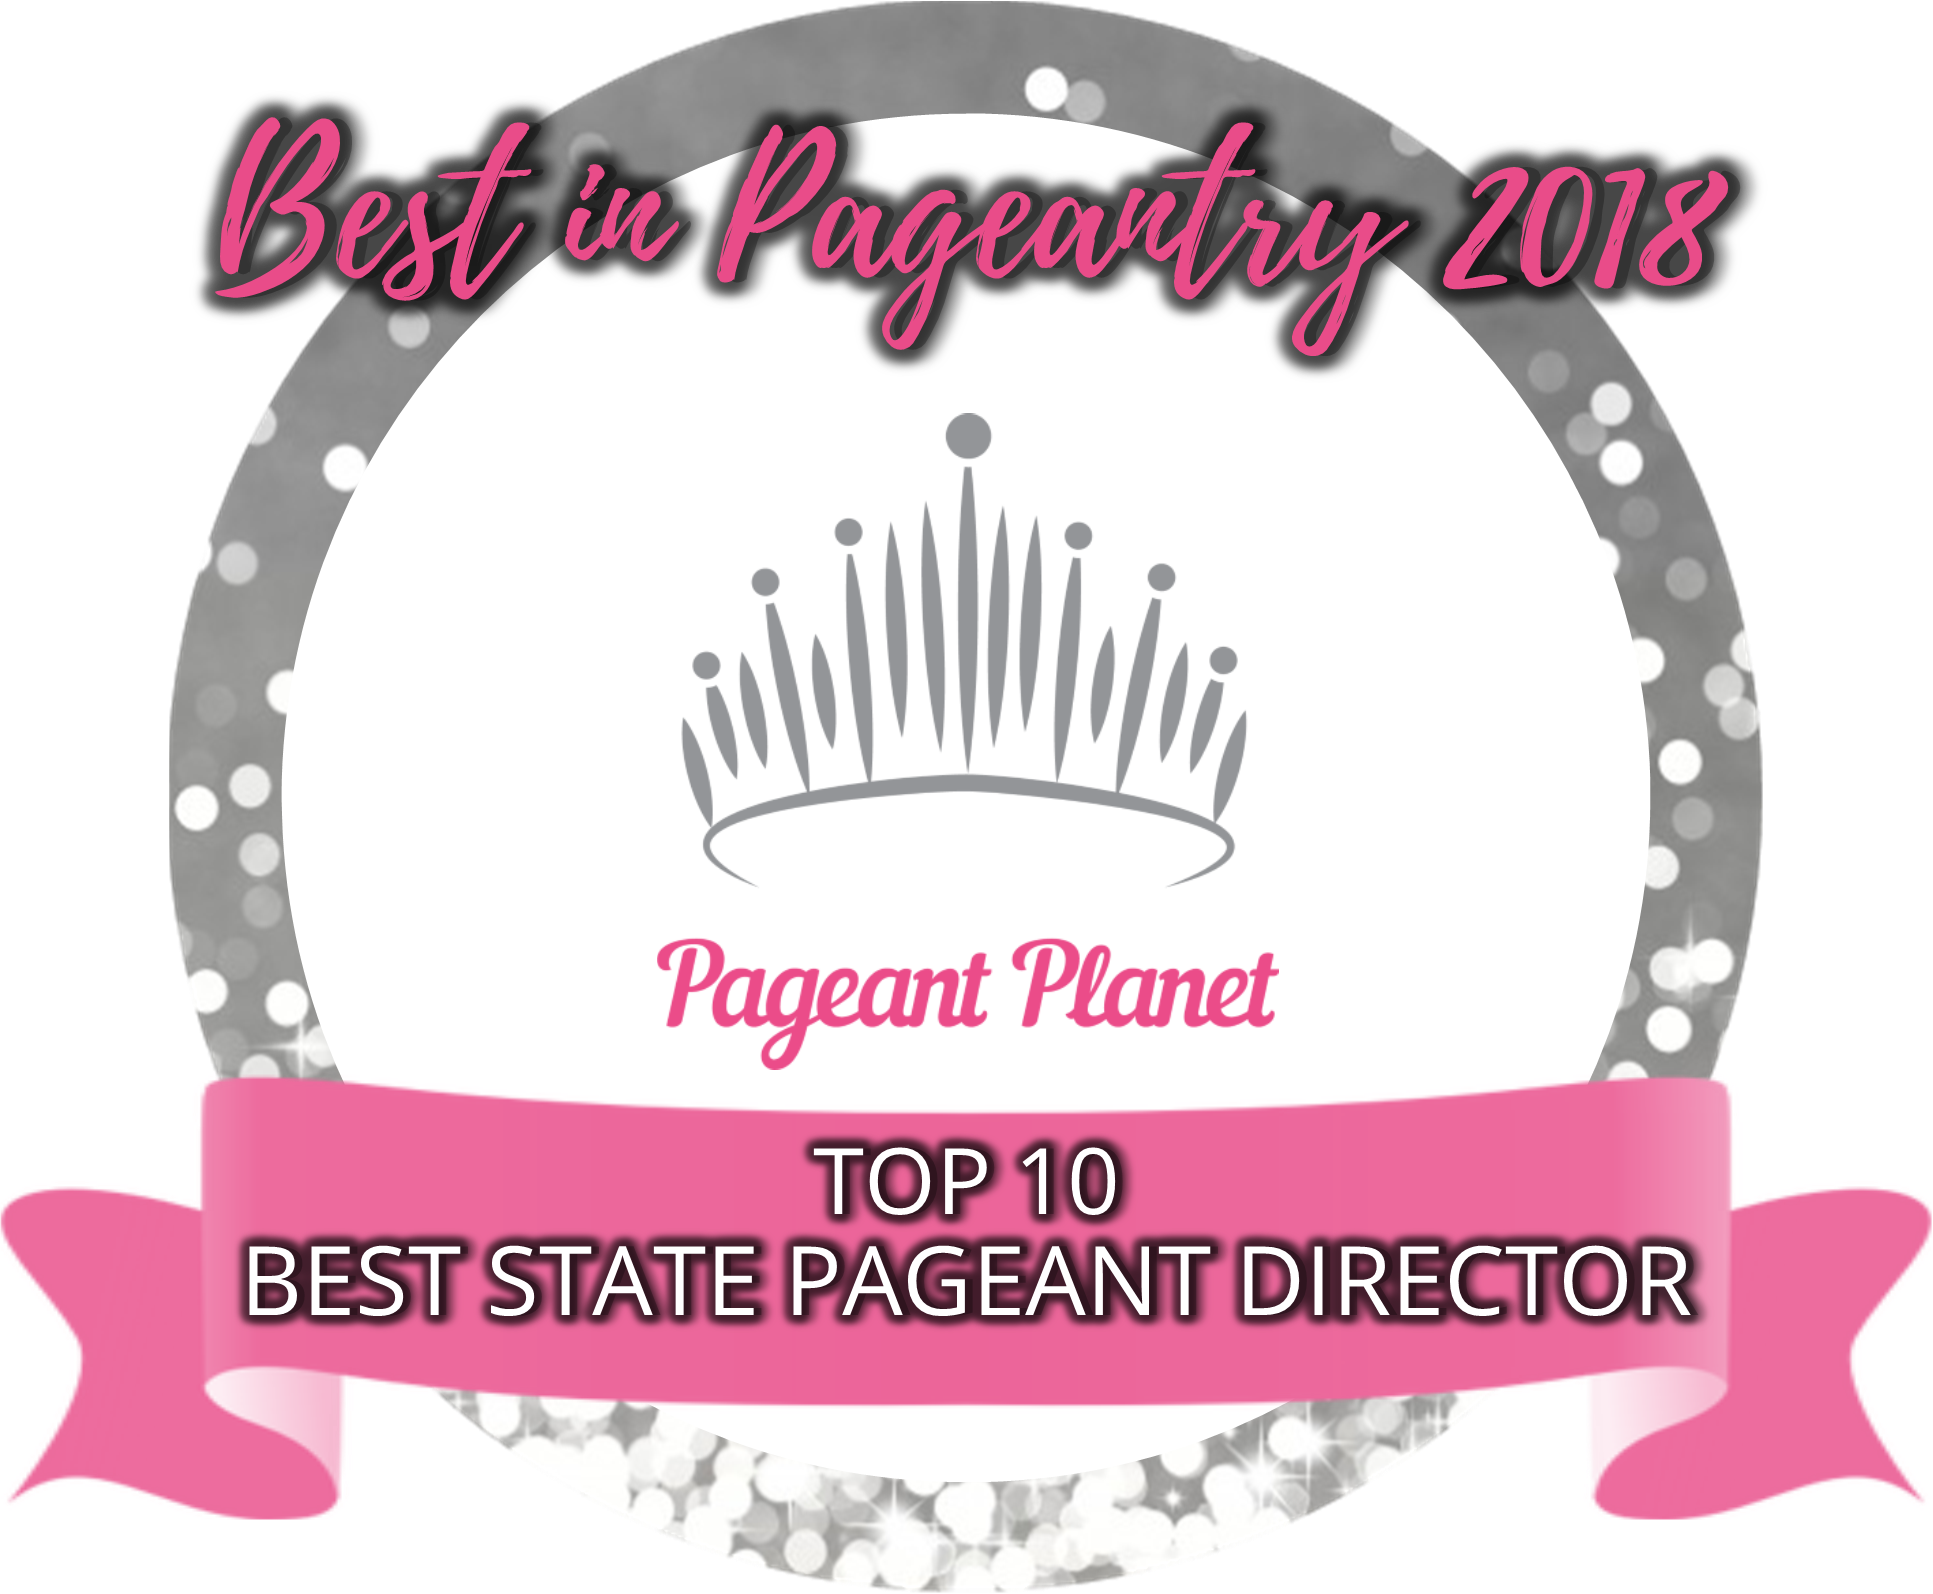 Top 10 Best State Pageant Director